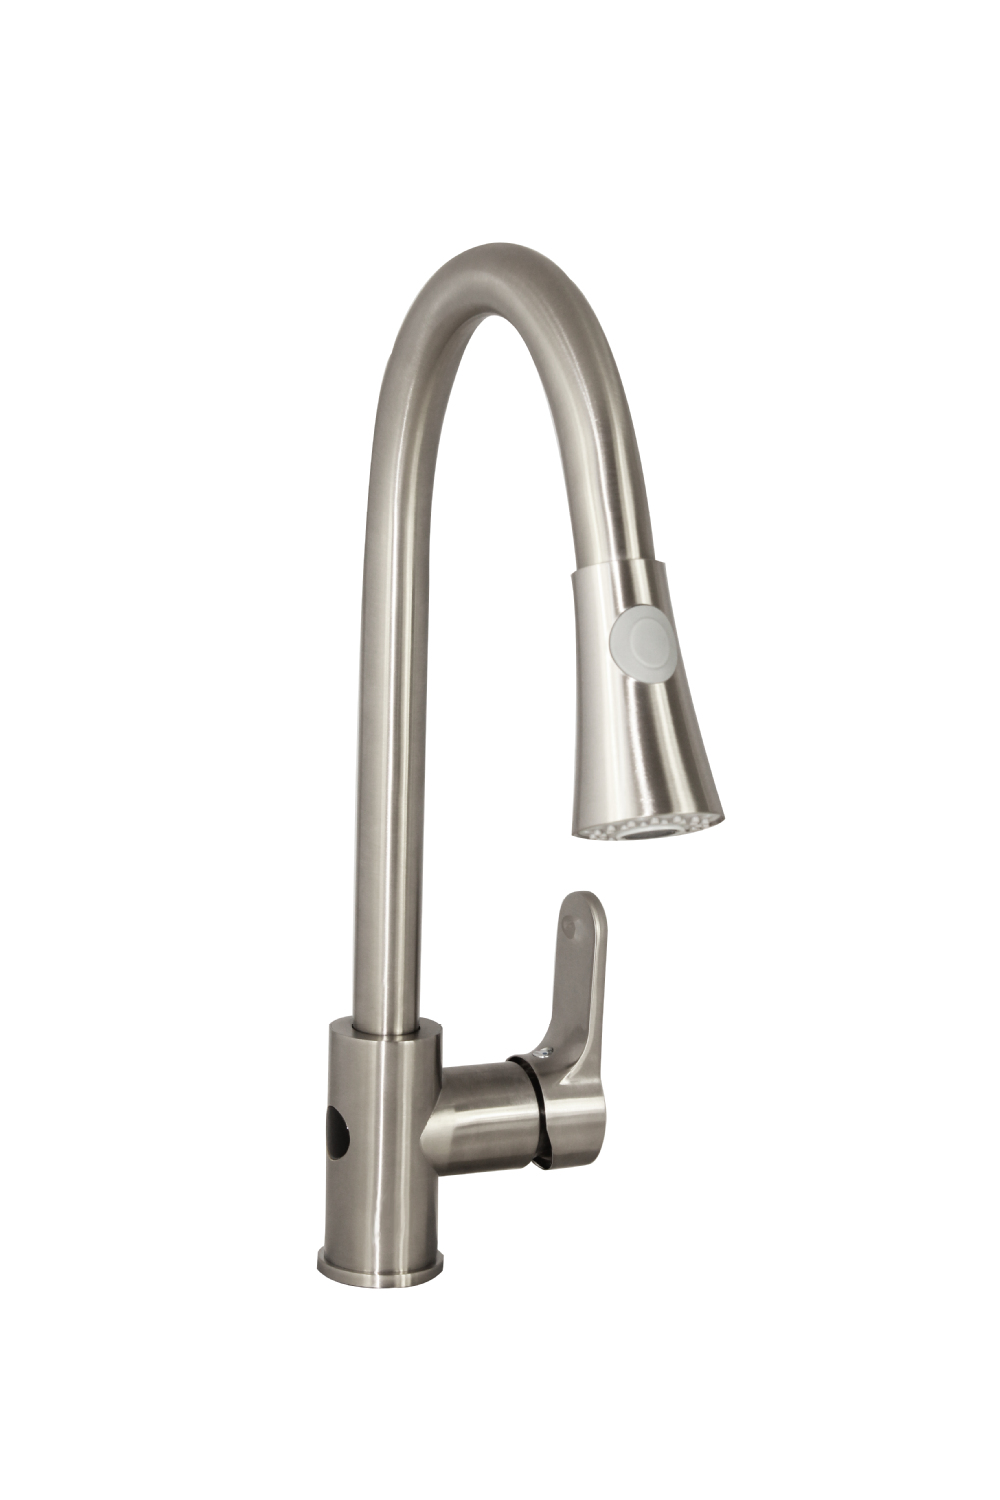 kitchen sink faucet amp kitchen faucet aerator buy kitchen popular replace kitchen sink faucet buy cheap replace